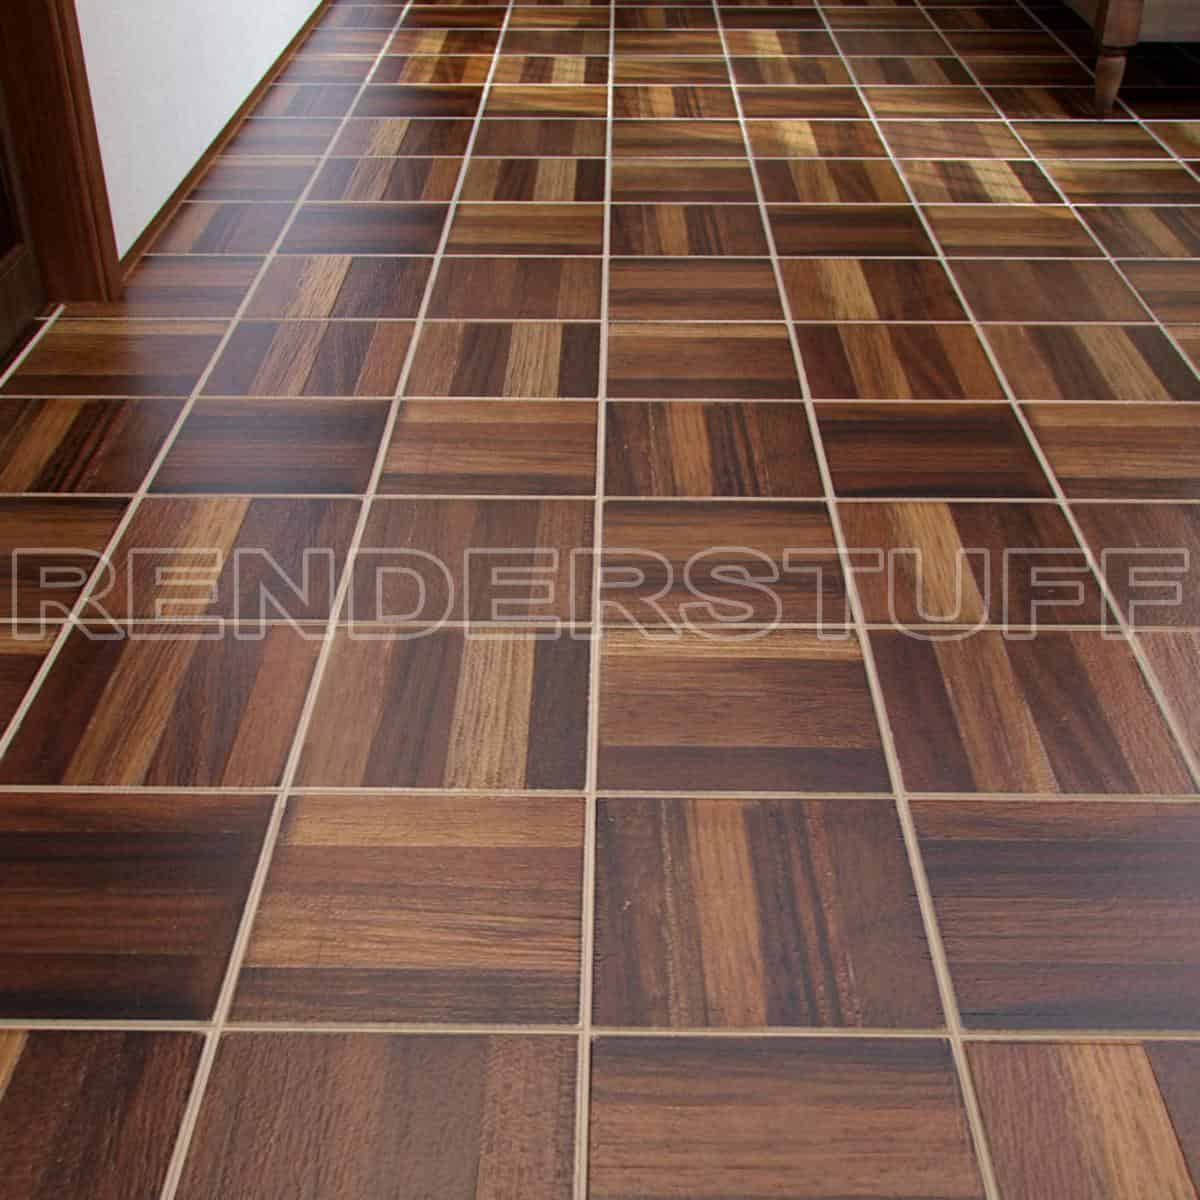 Wooden floor tiles image contemporary tile design ideas from wooden floor tiles image dailygadgetfo Images